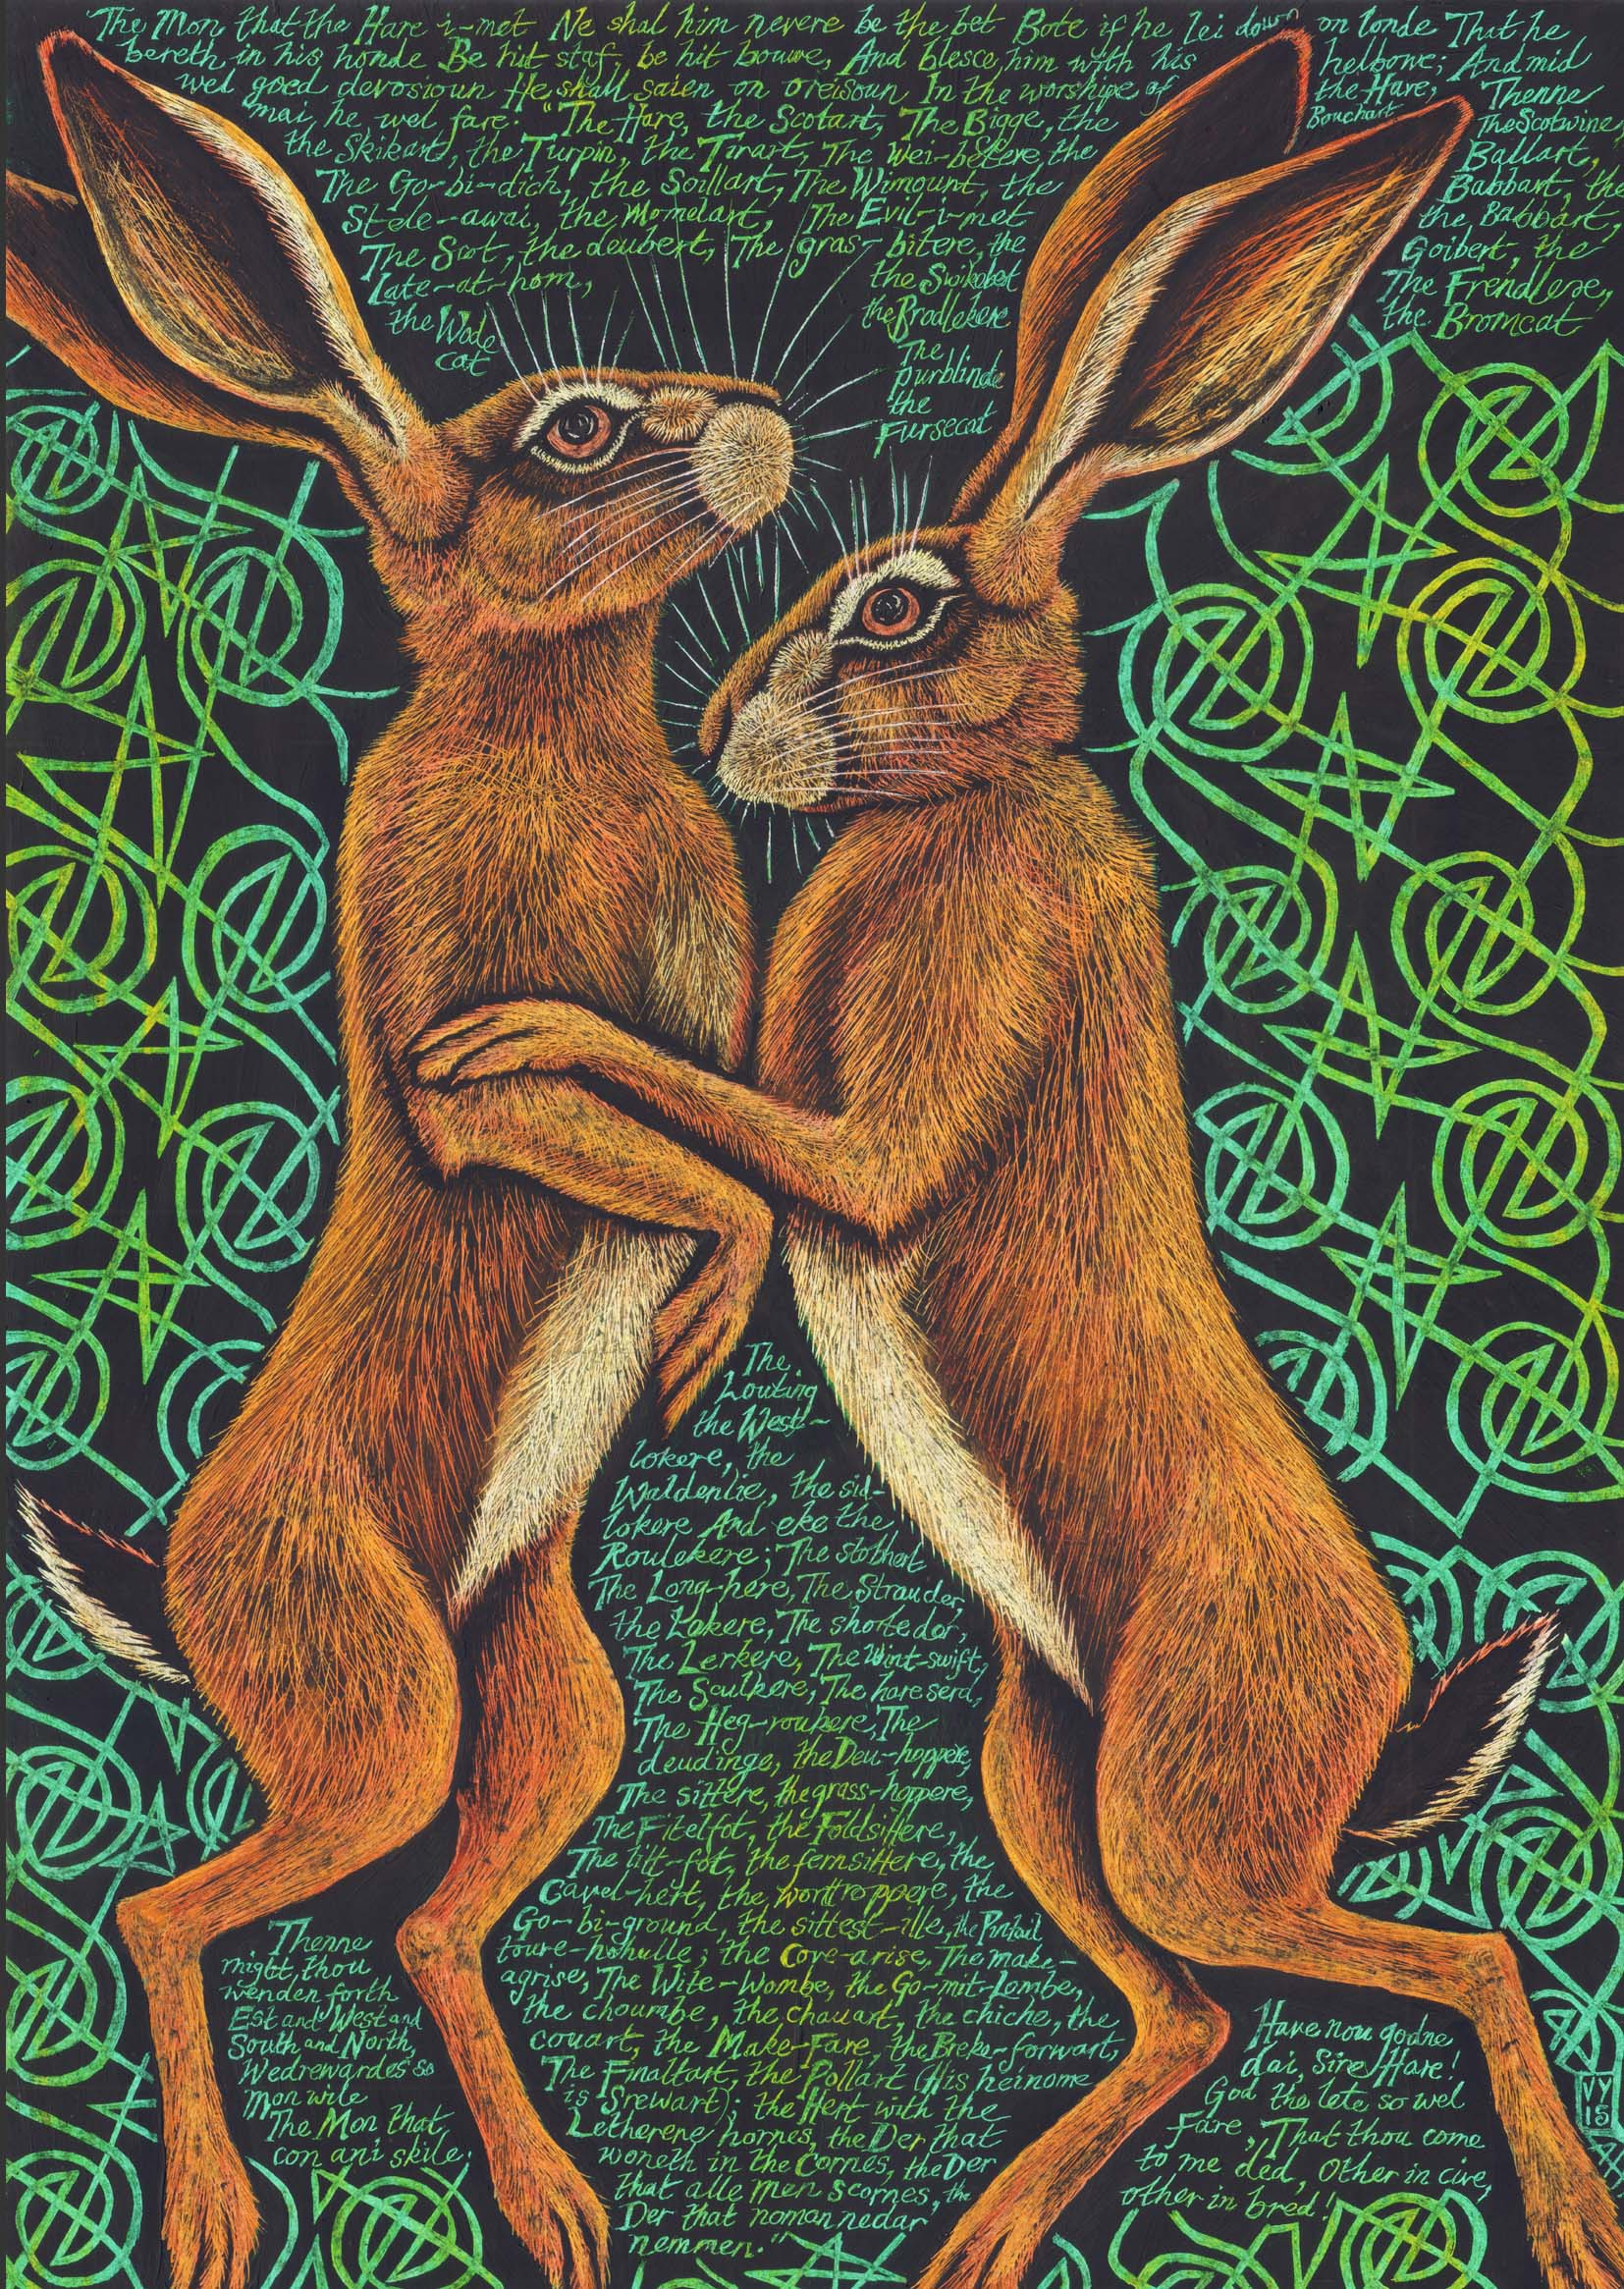 'The Hare-i-met' card